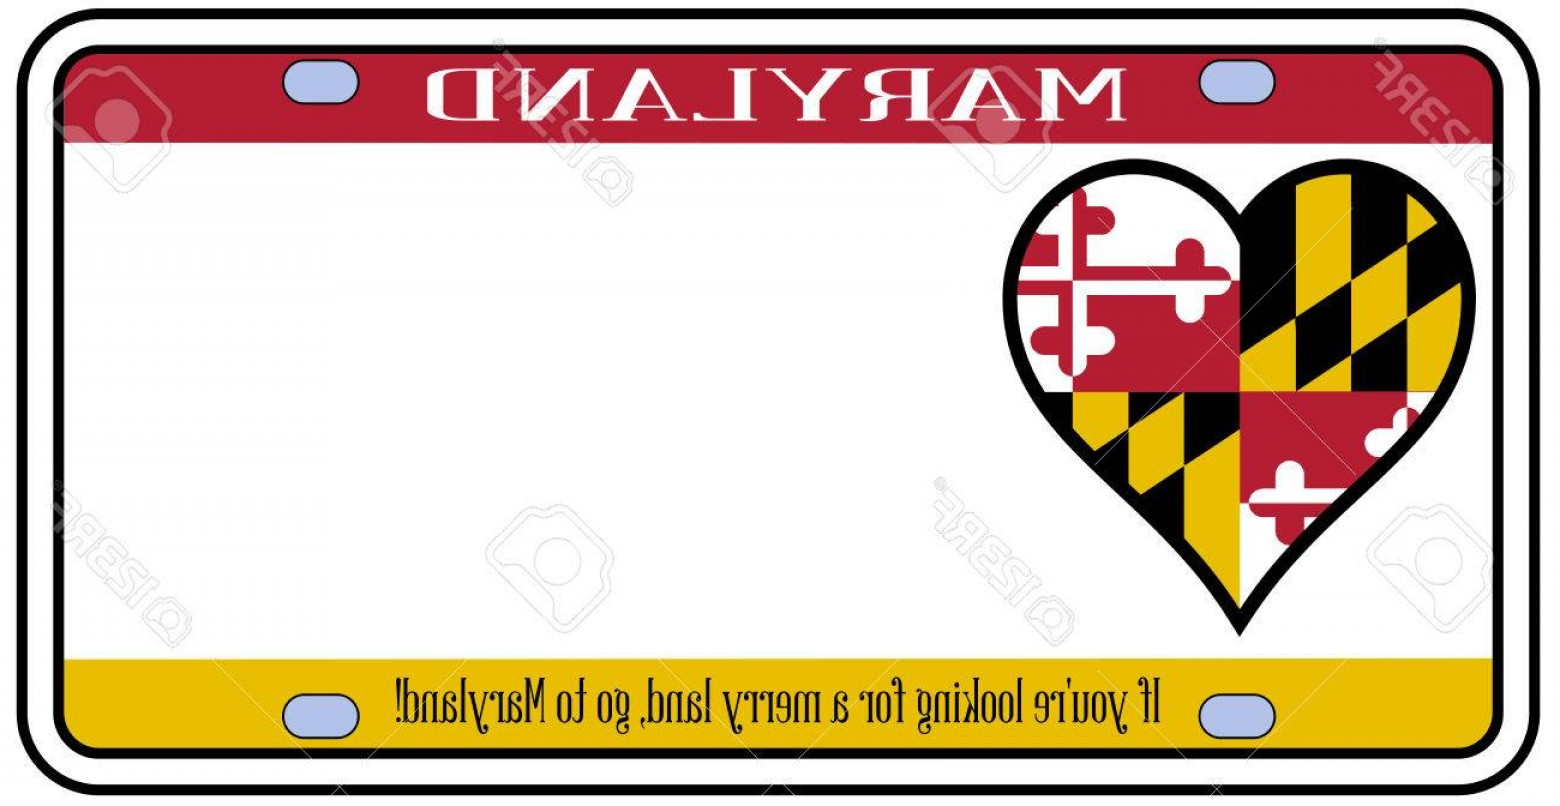 Florida License Plate Vector Art: Photostock Vector Maryland State License Plate In The Colors Of The State Flag With The Flag Icons Over A White Backgr